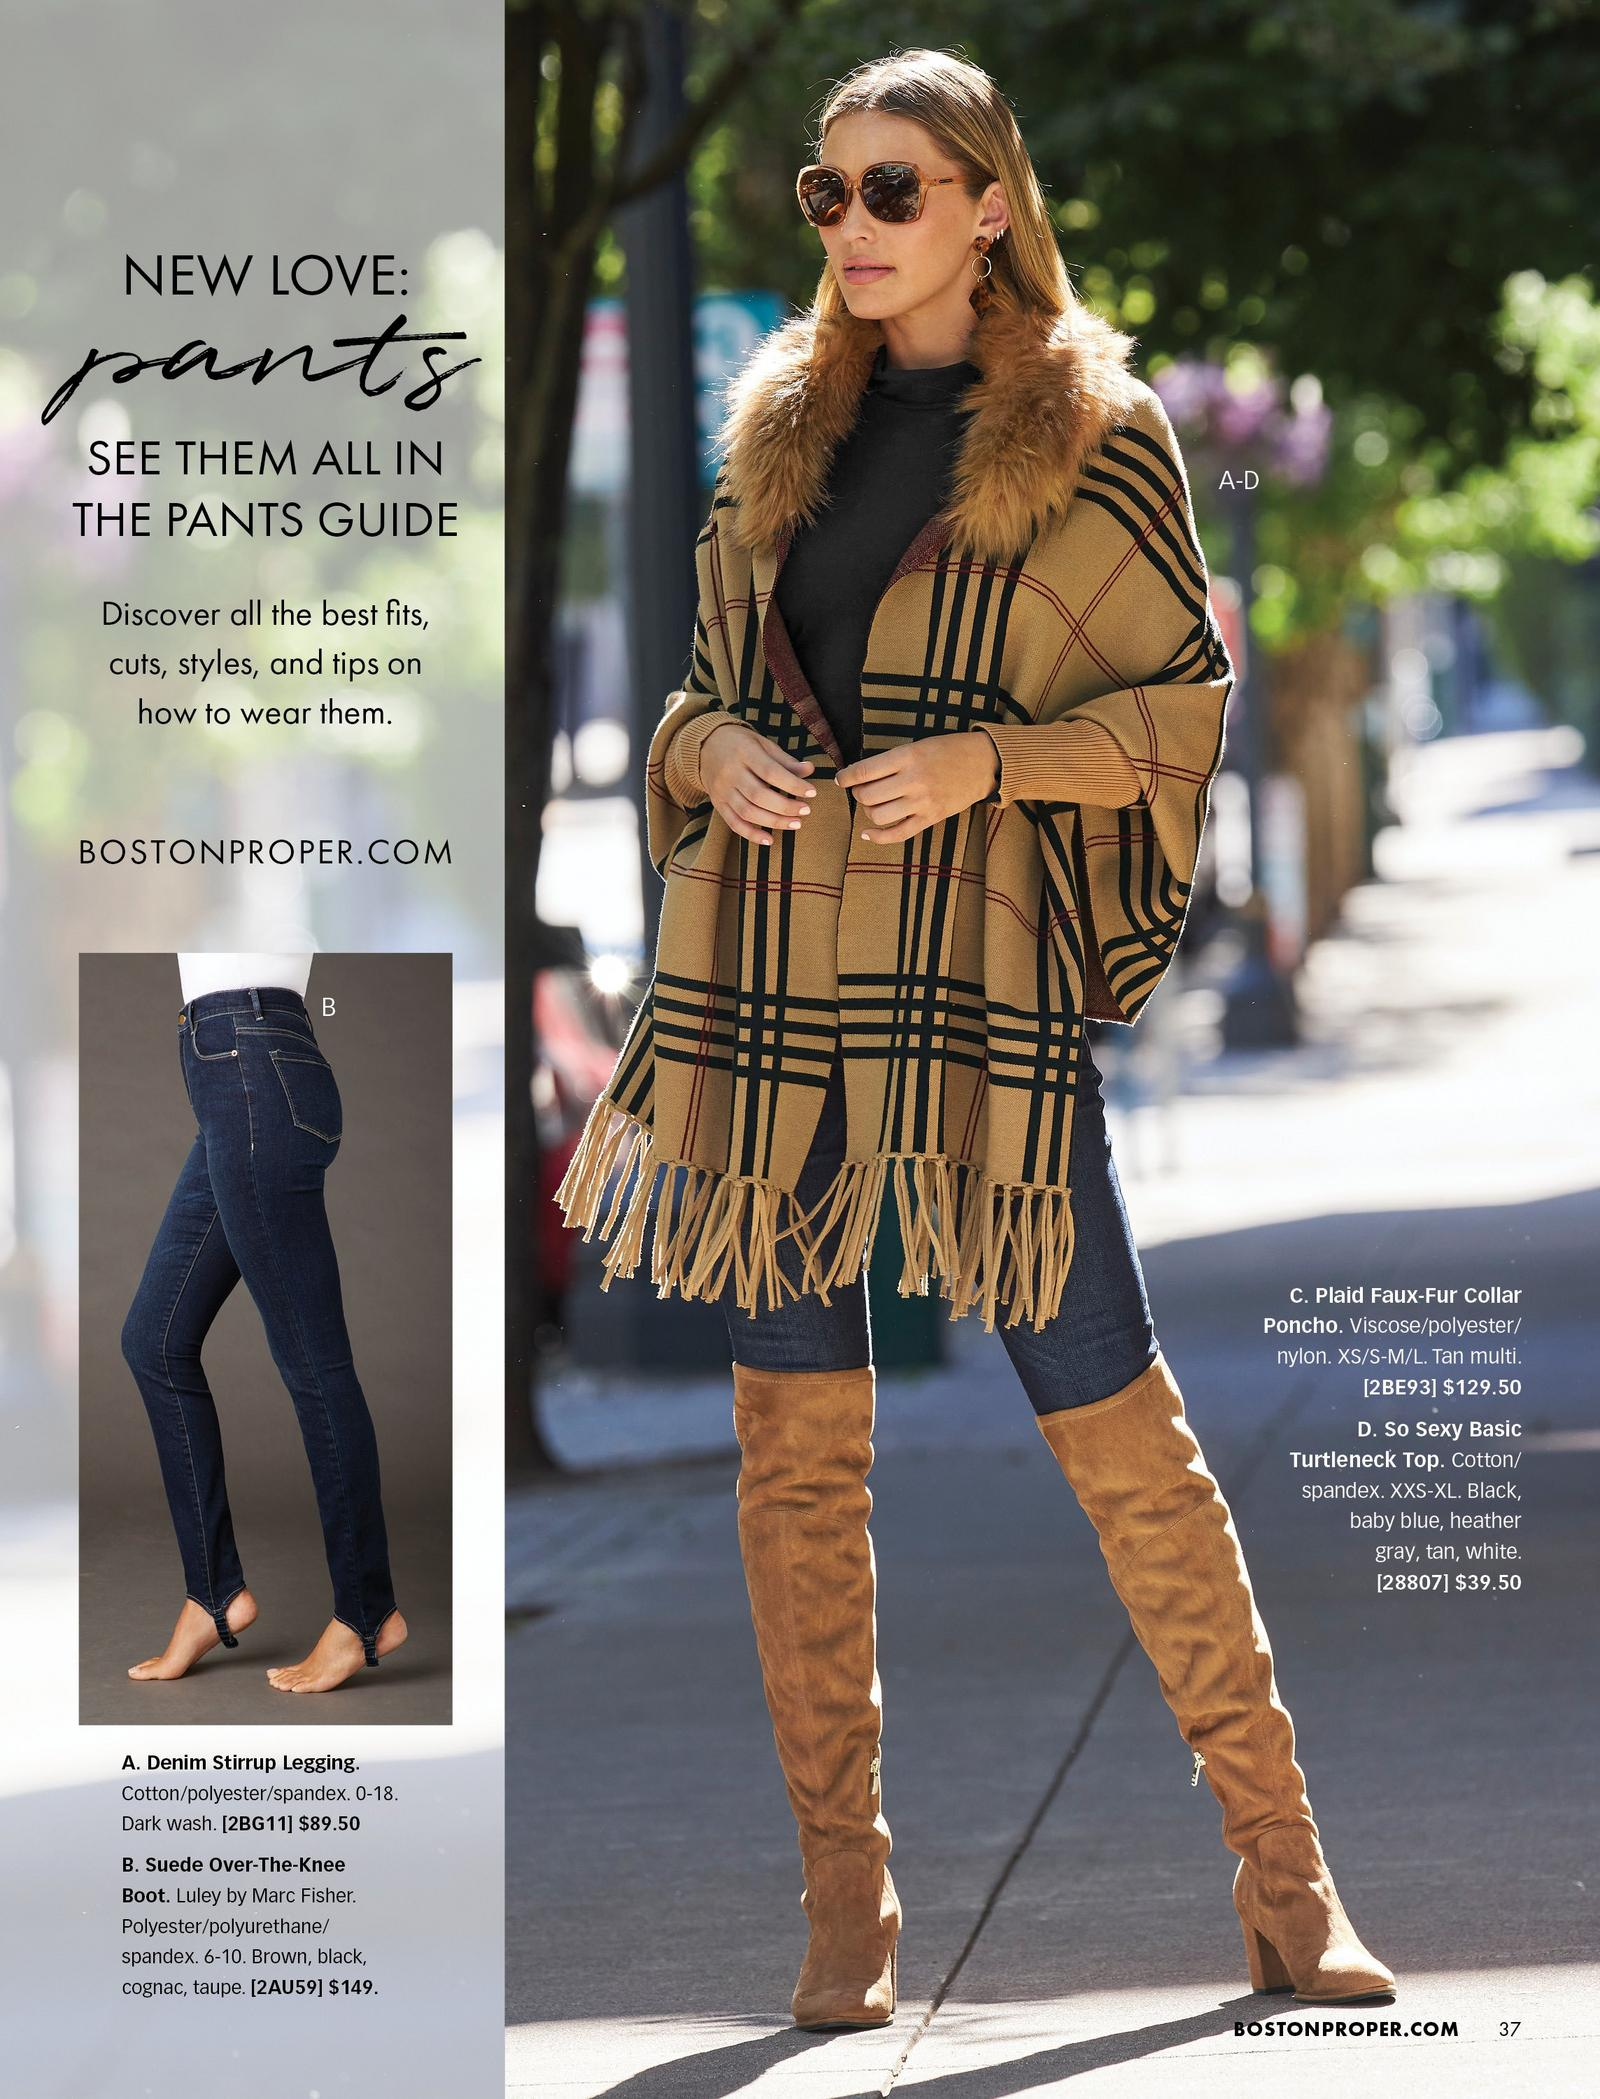 model wearing a tan plaid poncho with a faux-fur collar and fringe, black turtleneck top, denim stirrup leggings, and tan over-the-knee suede boots. also shown: the denim stirrup leggings.